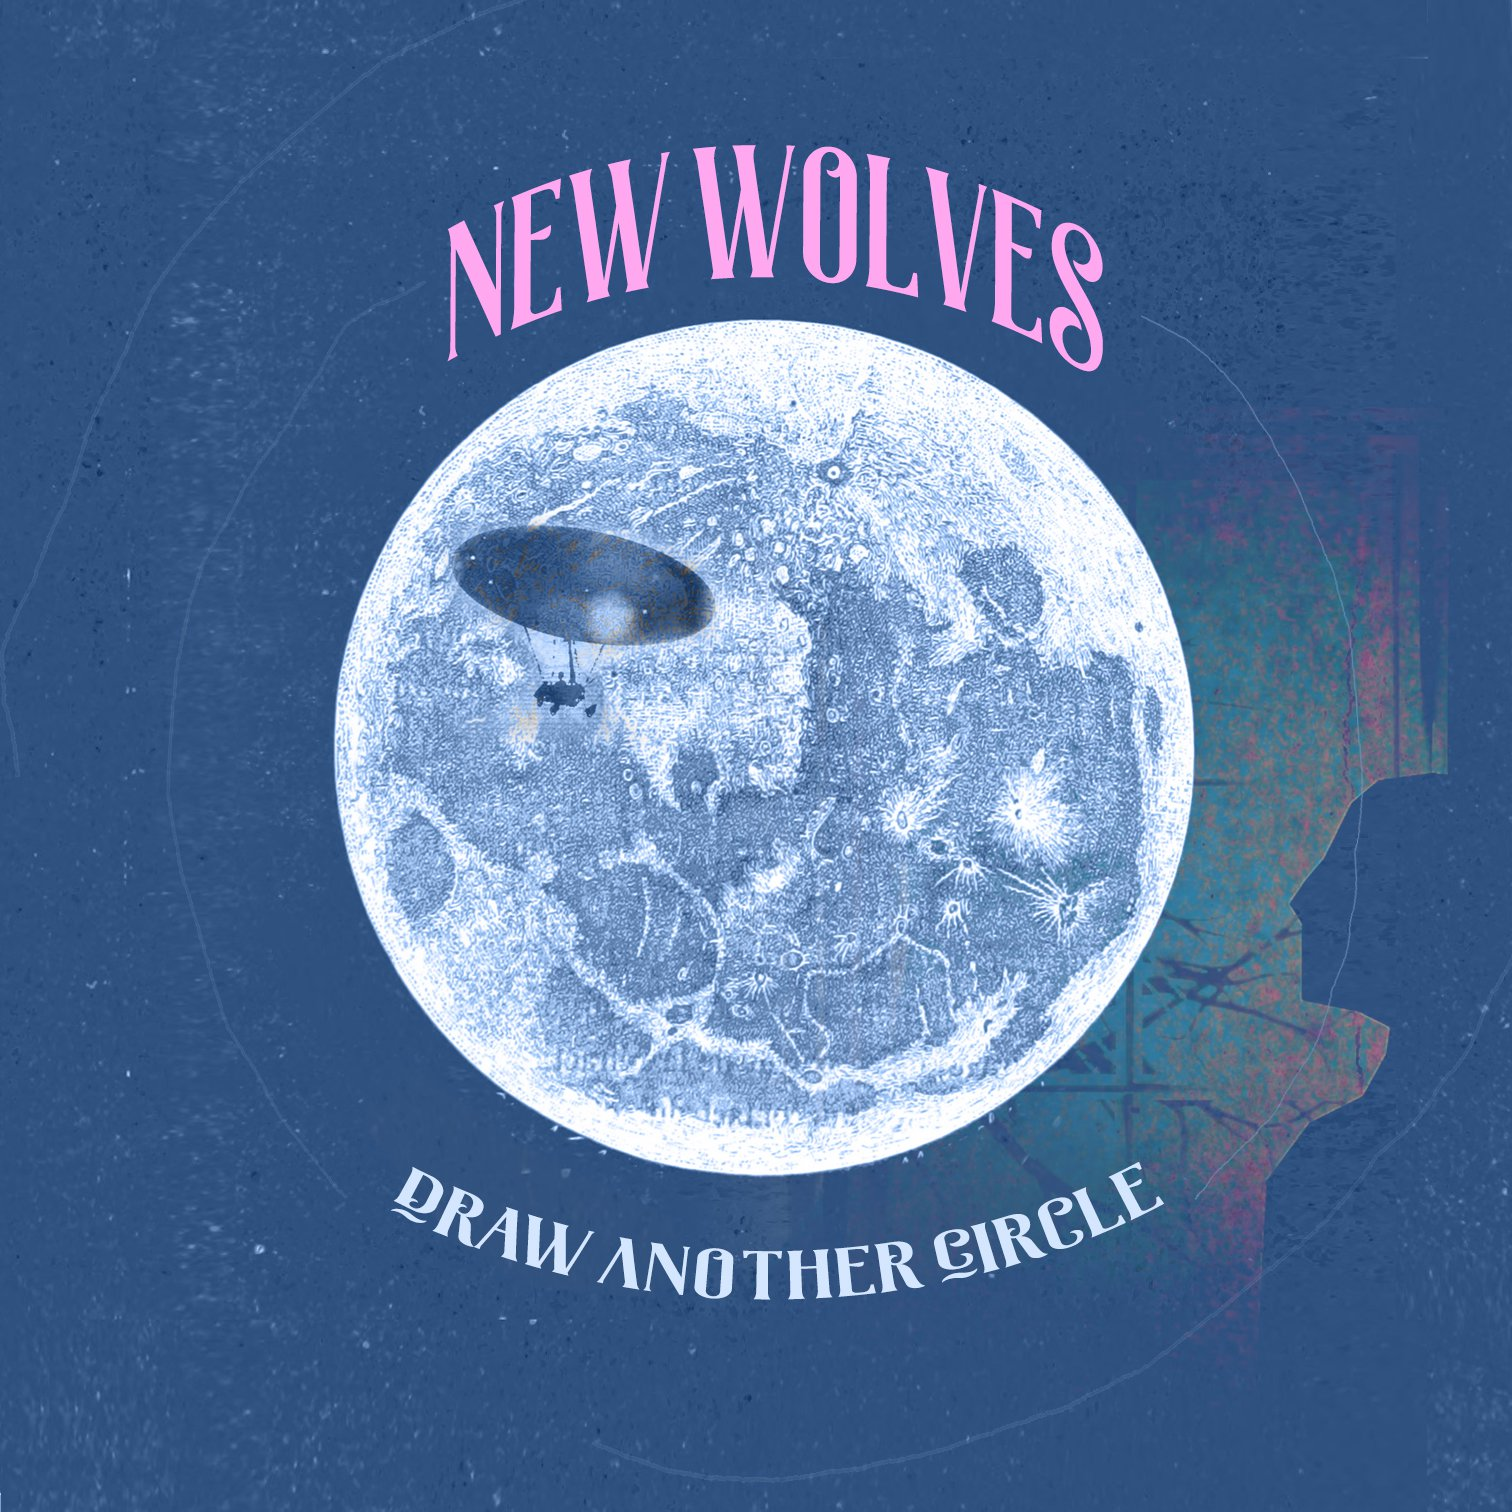 """Read more about the article The Daily Feature: New Wolves Soothes Audiences With """"Draw another circle"""""""